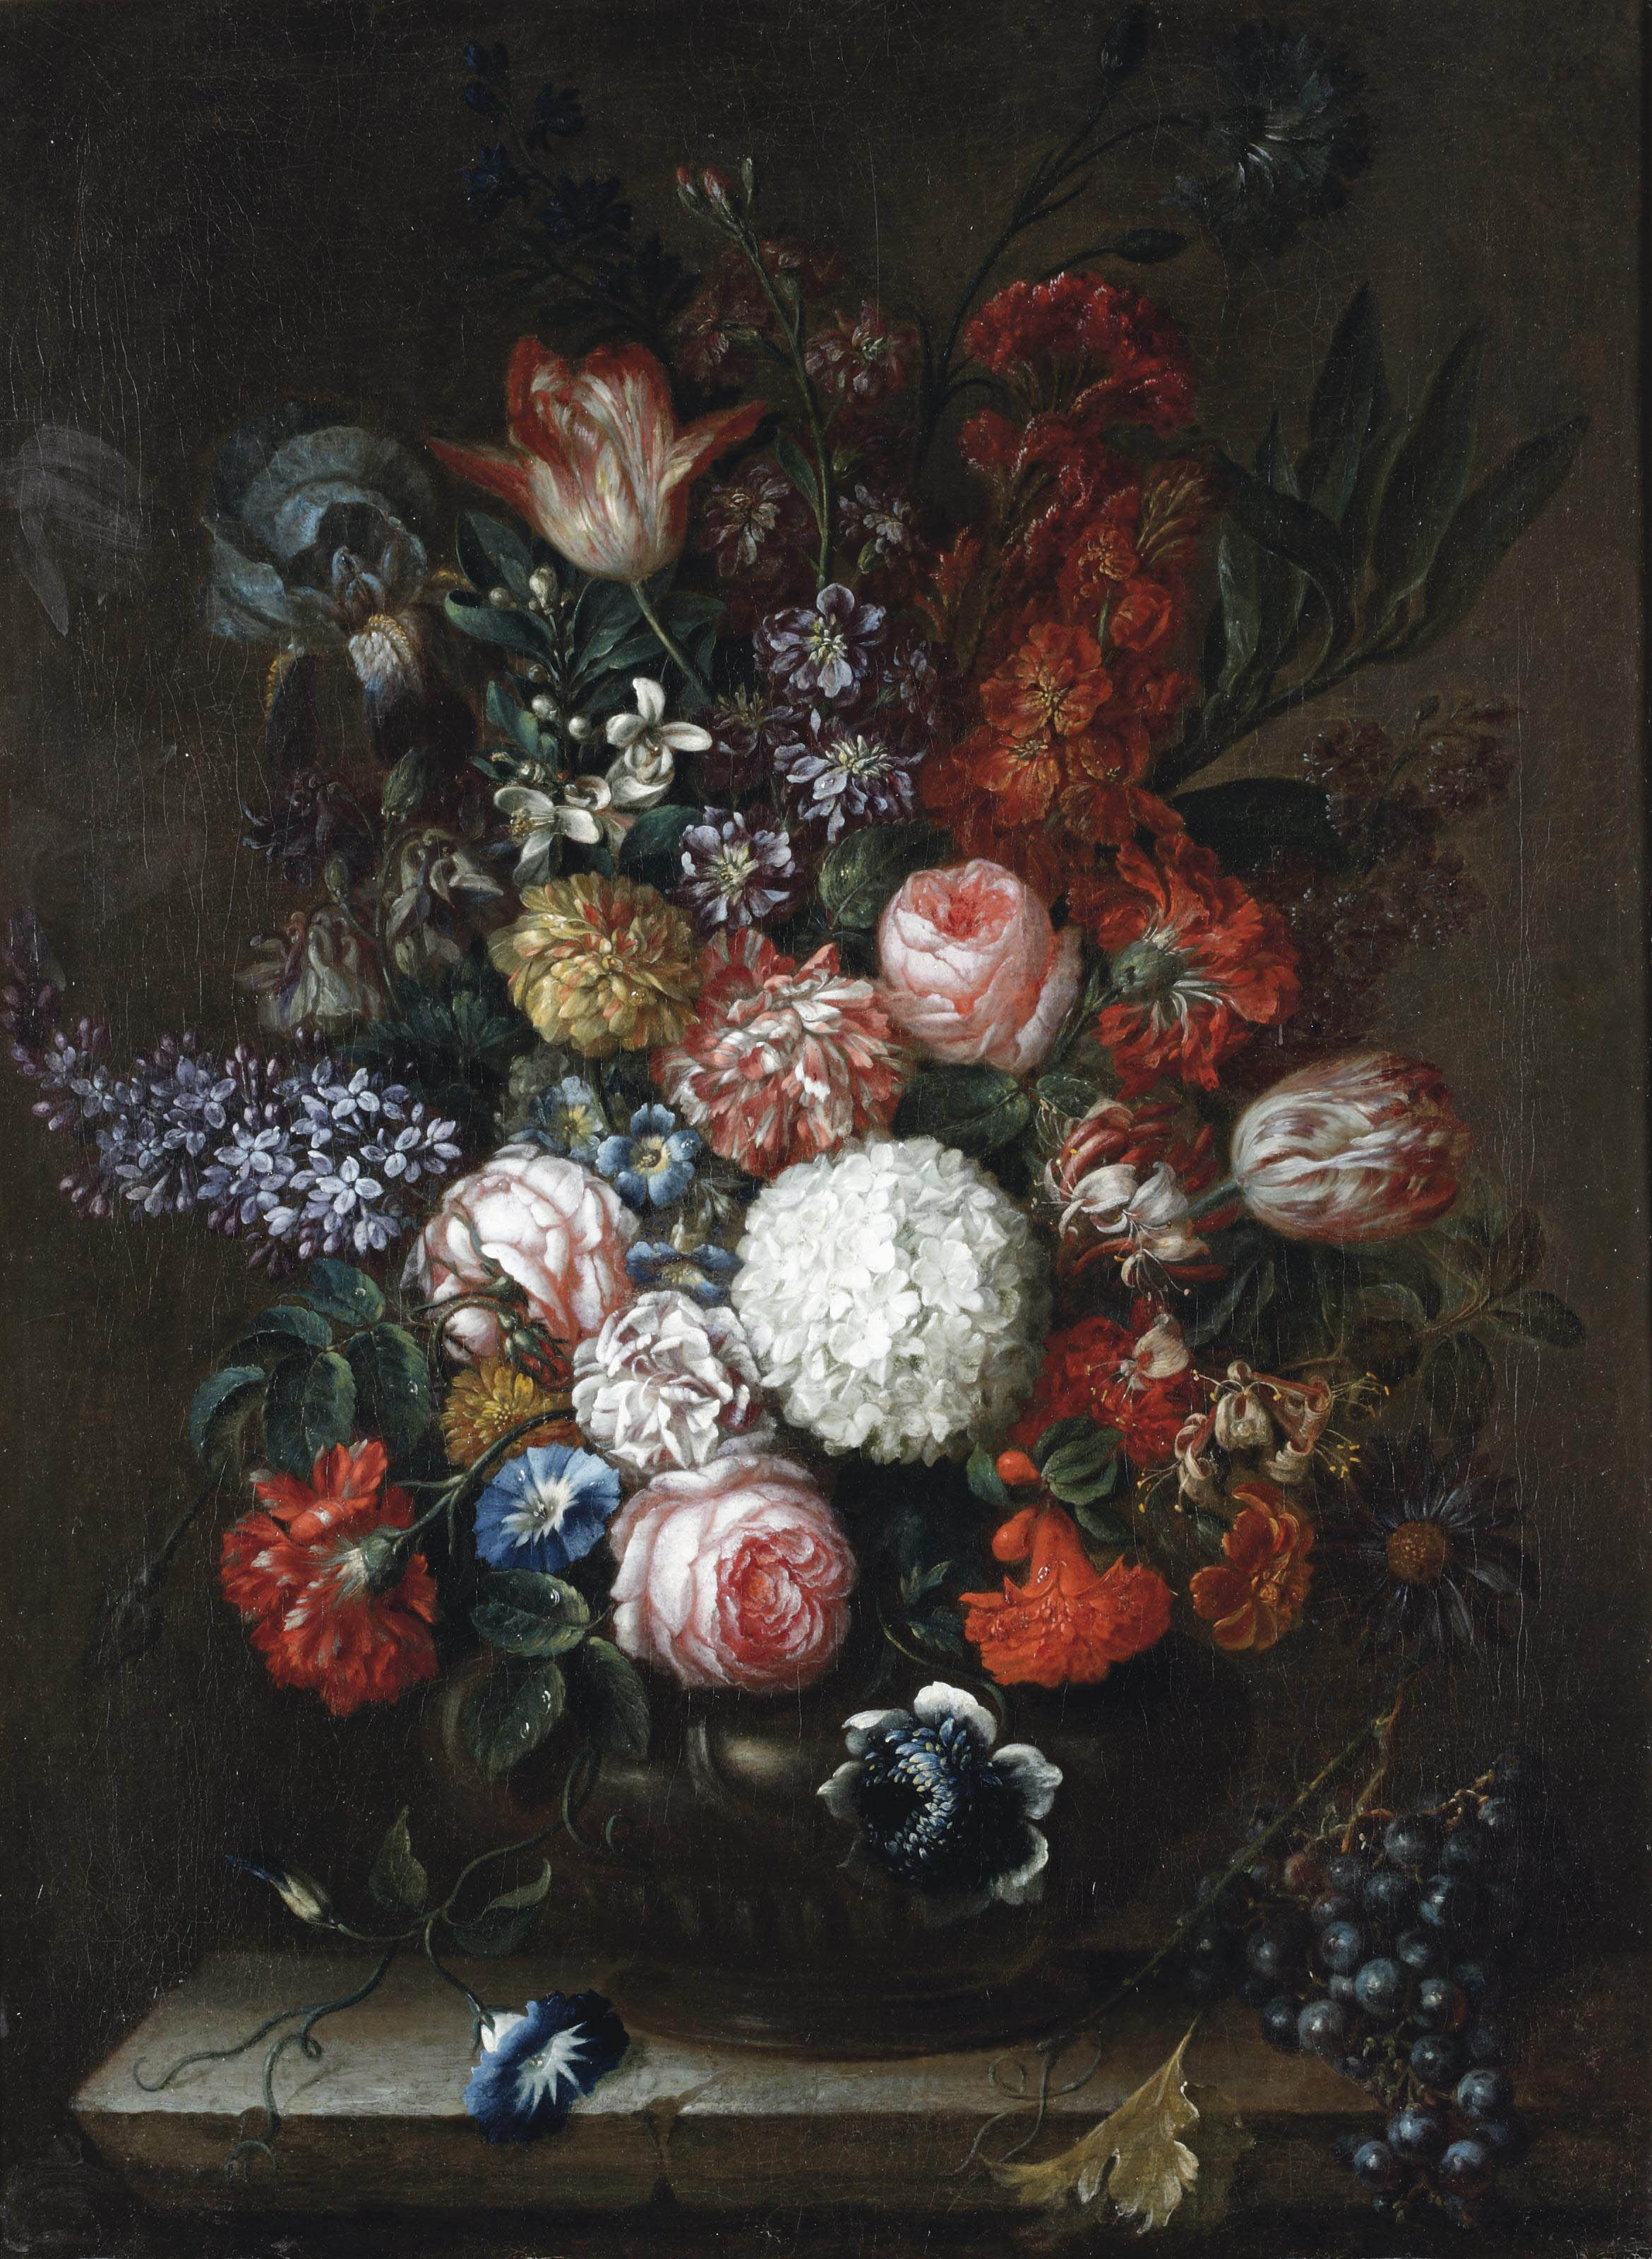 Roses, carnations, honeysuckle, wisteria and other flowers with blue grapes, all on a stone ledge